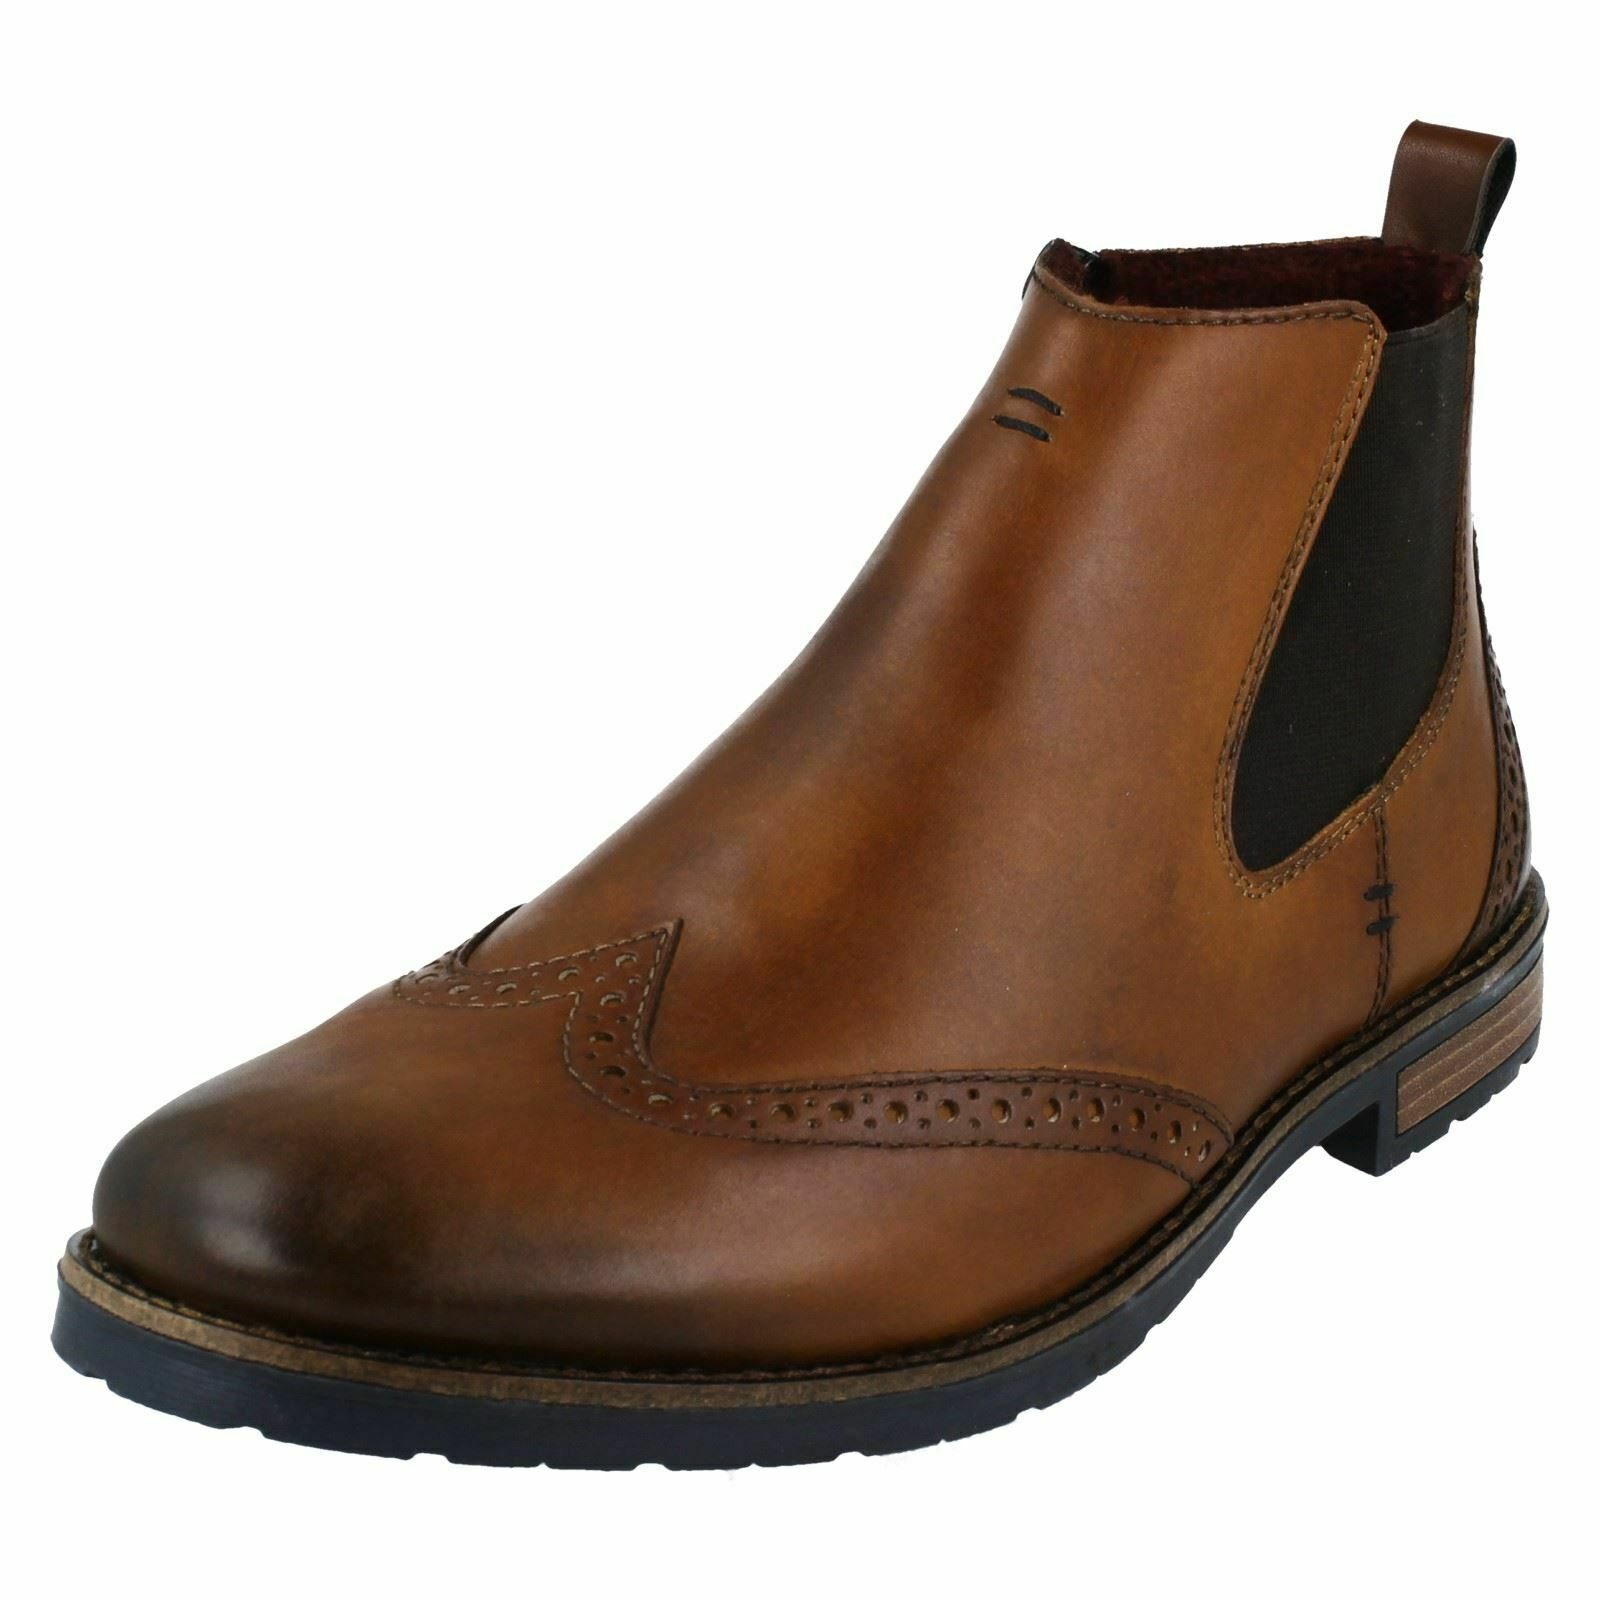 Rieker mens Boots With Brogue Detail - 34660